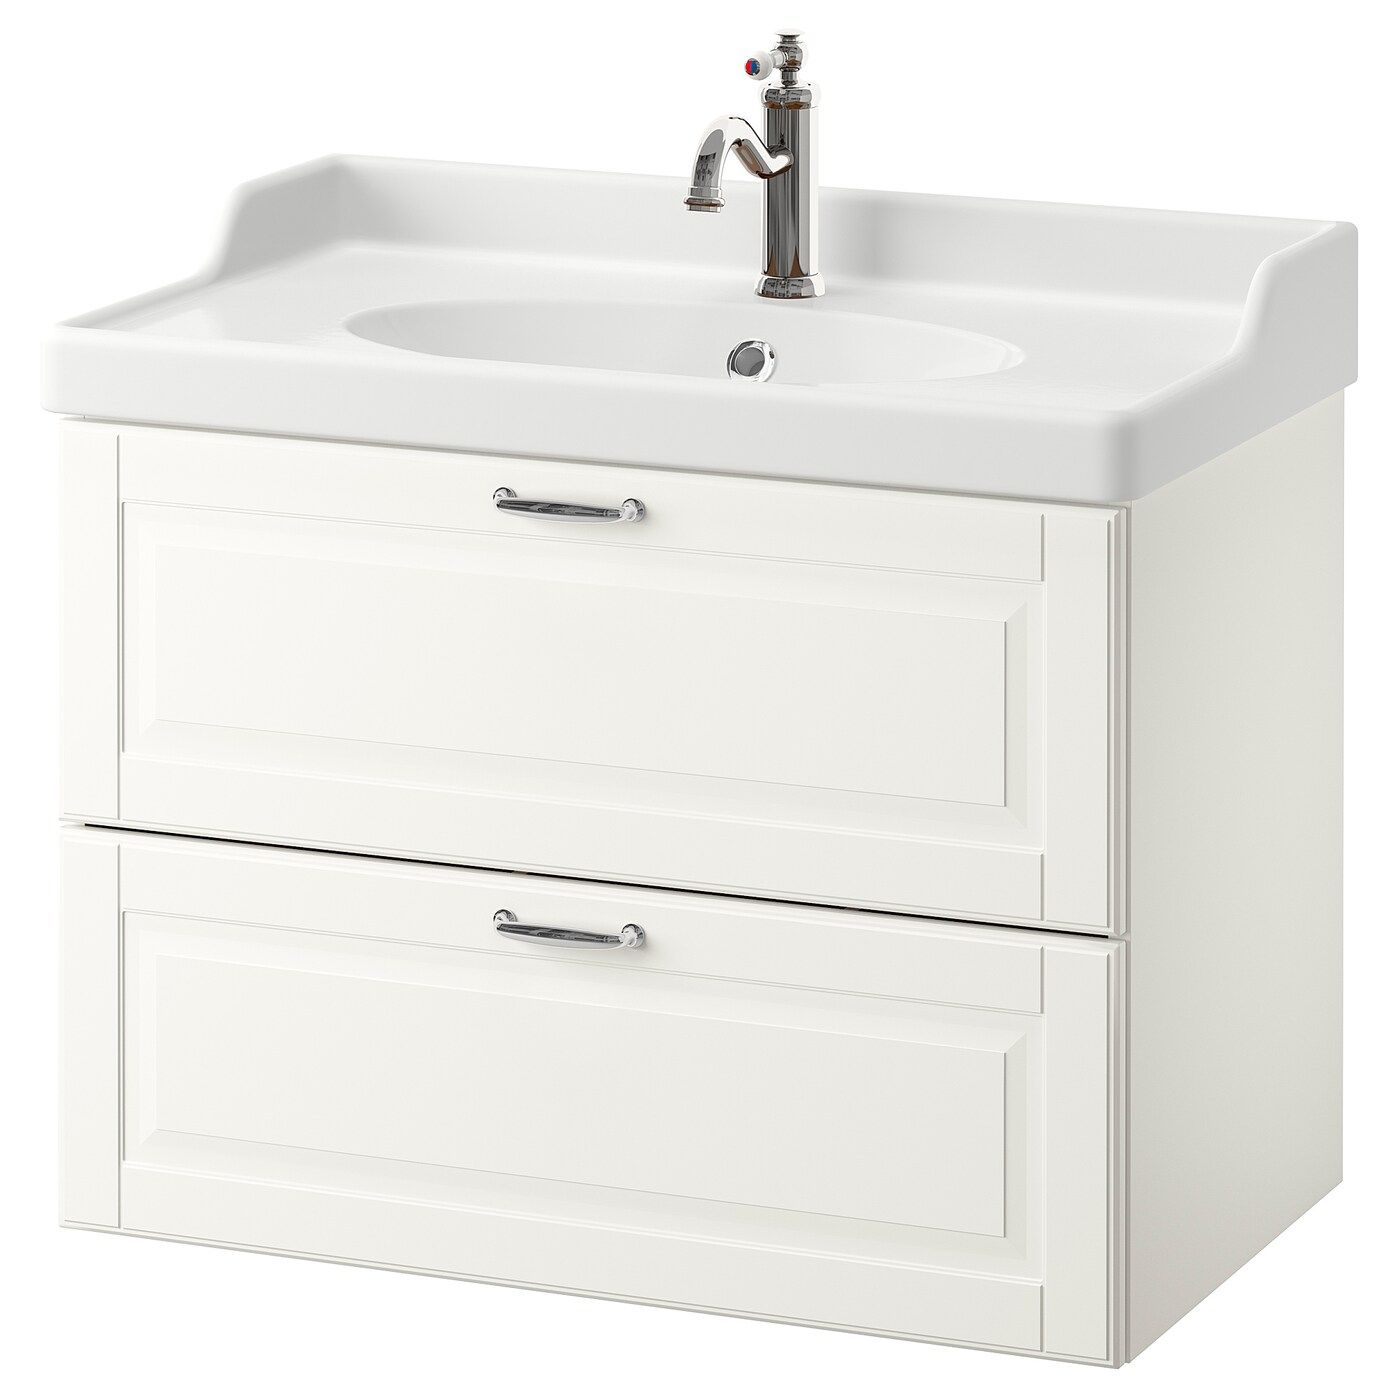 Ikea Godmorgon Rattviken Sink Cabinet With 2 Drawers In 2020